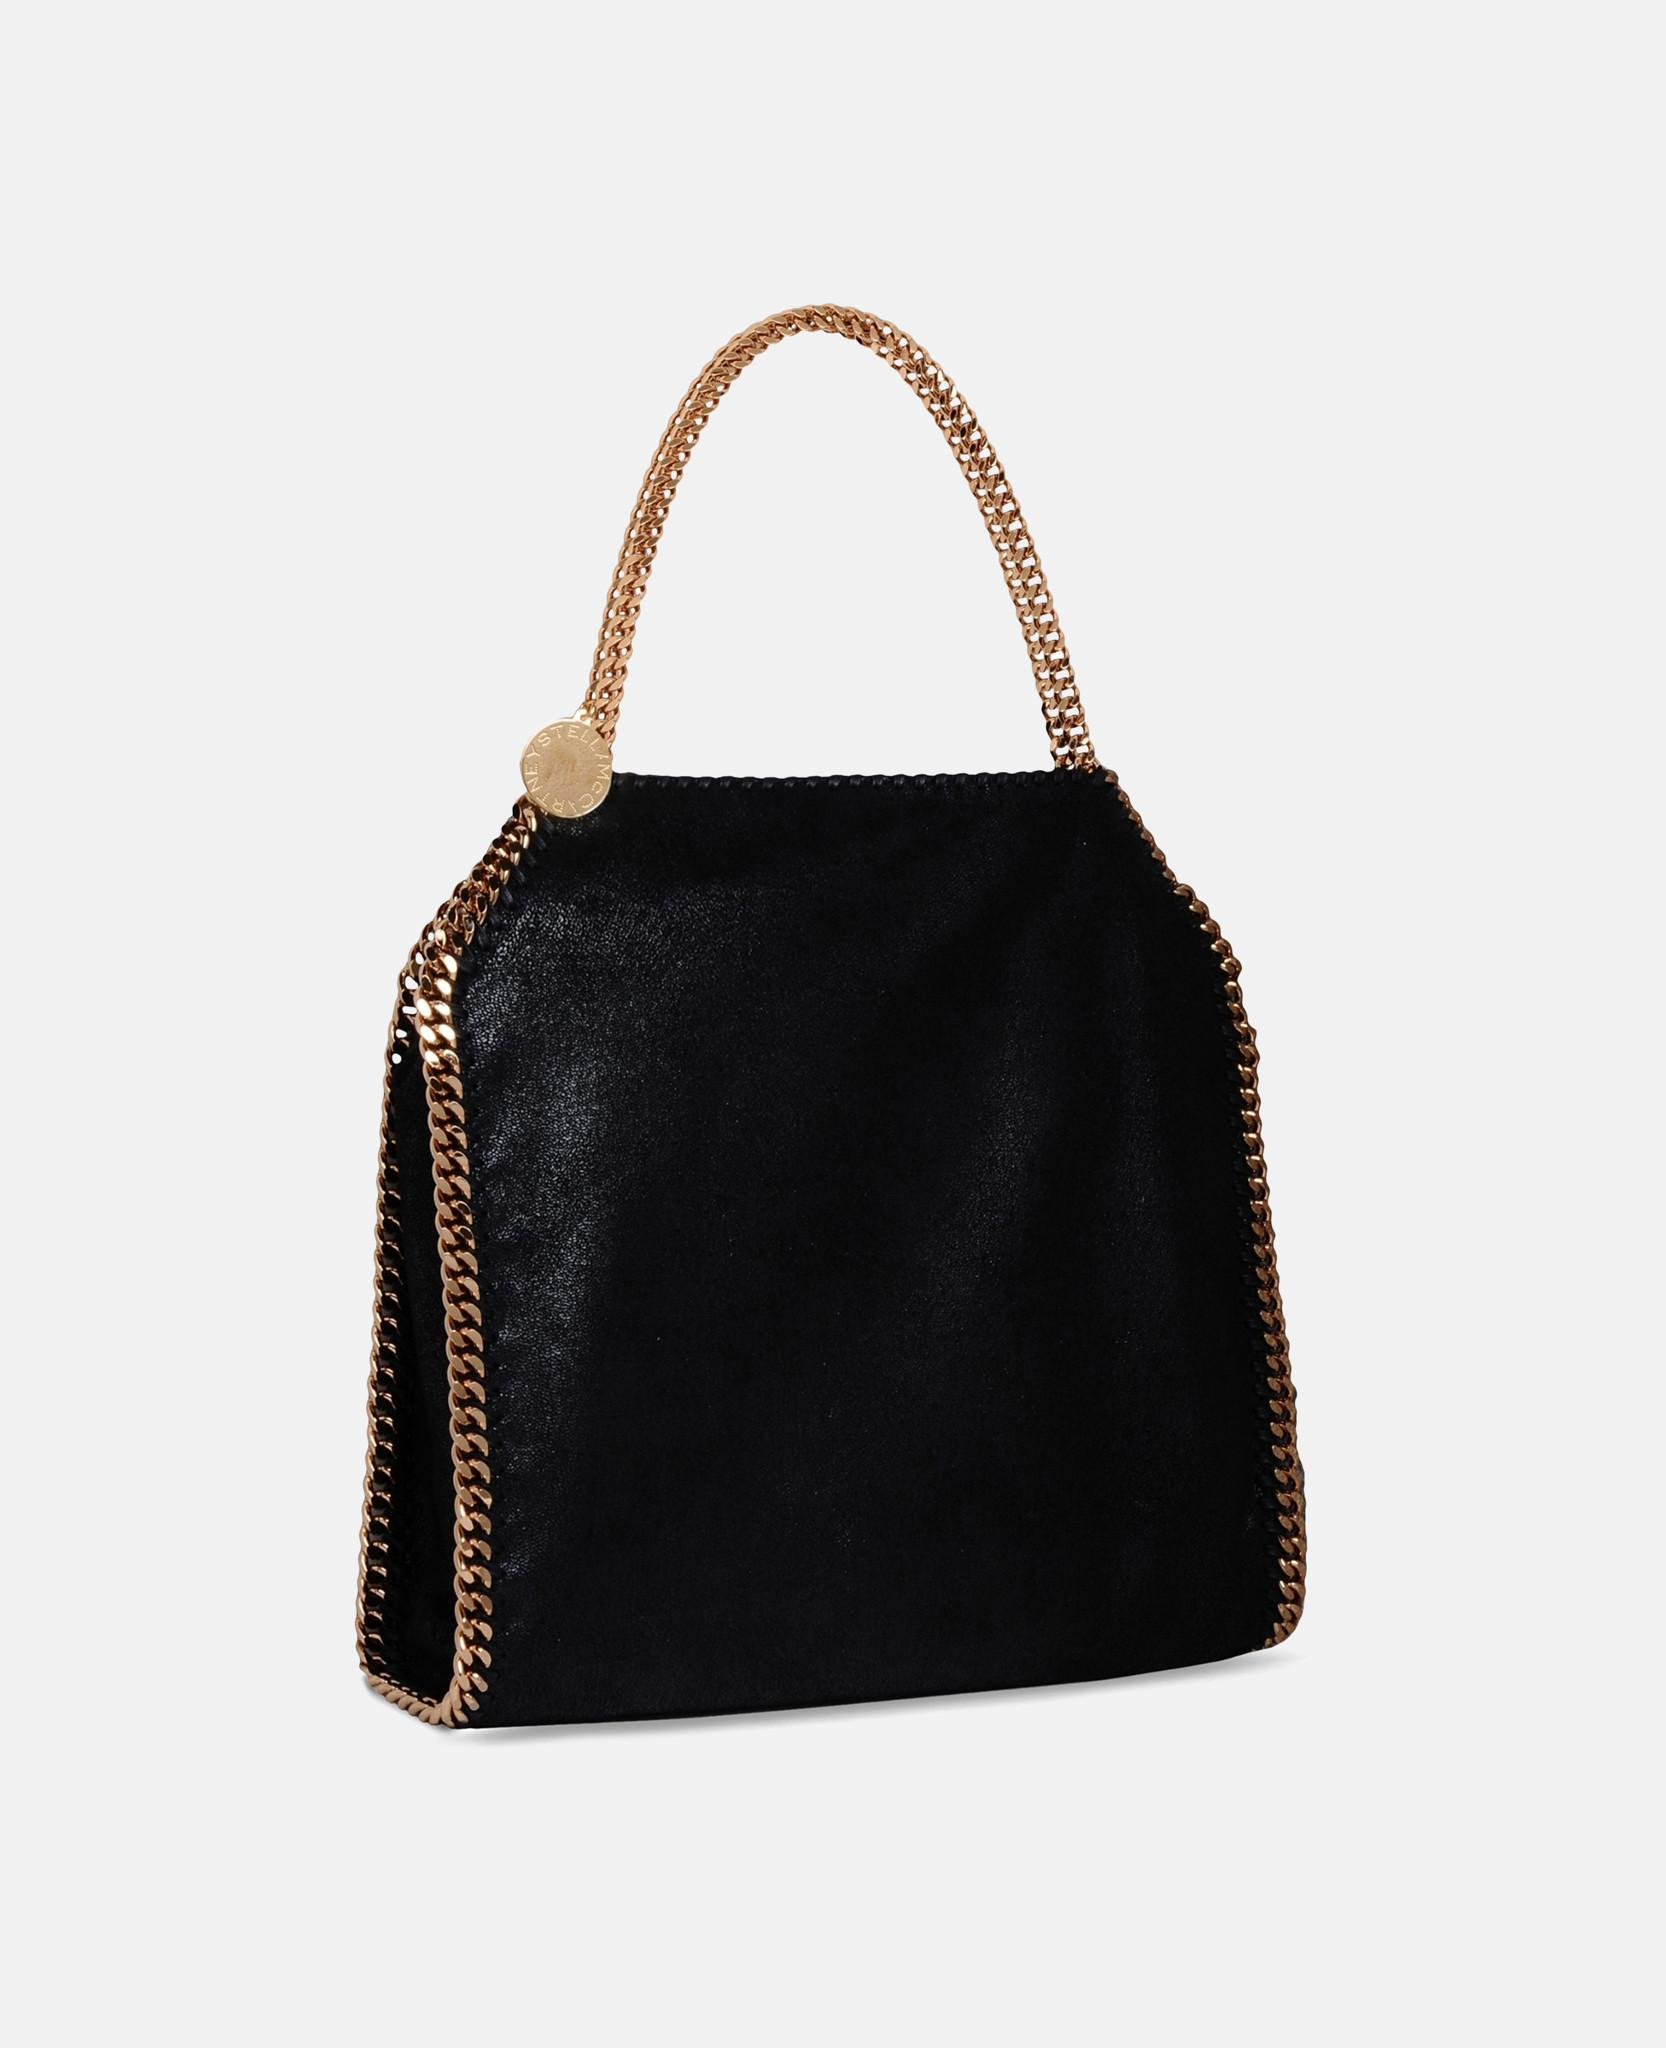 1ddd2b9581 Lyst - Stella McCartney Black Falabella Shaggy Deer Small Tote in ...